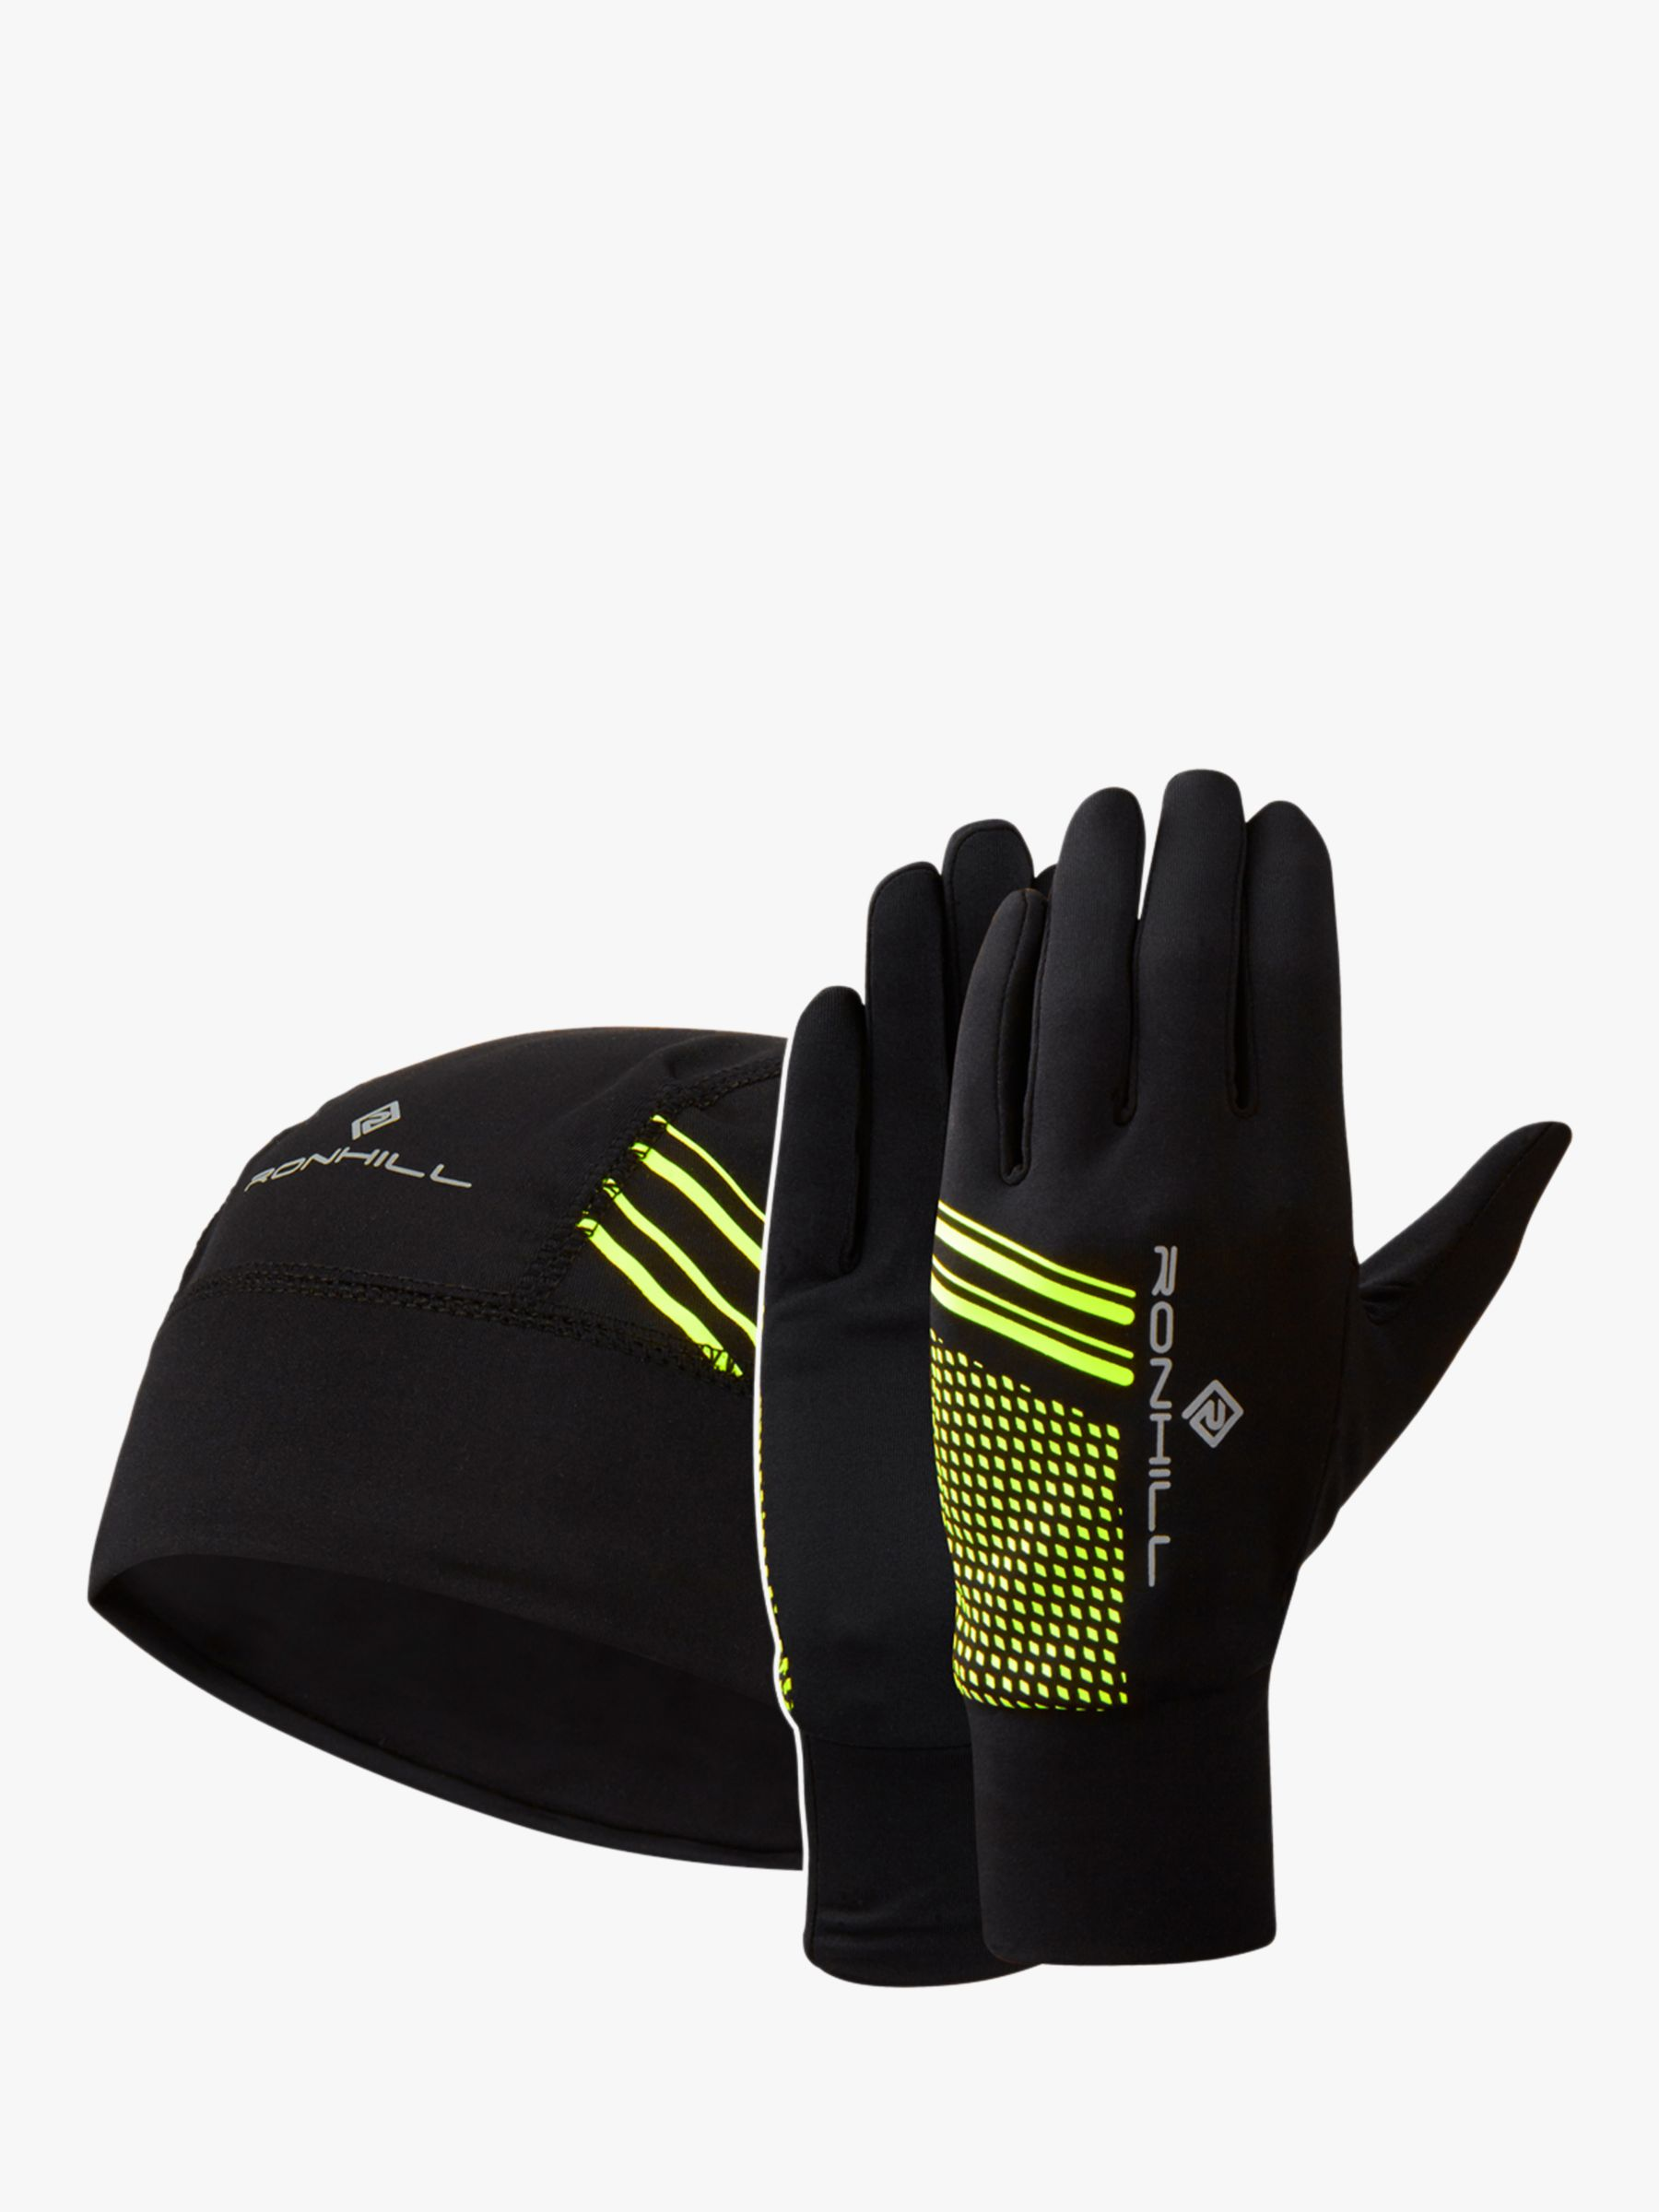 Ronhill Ronhill Beanie & Glove Set, Black/Fluo Yellow